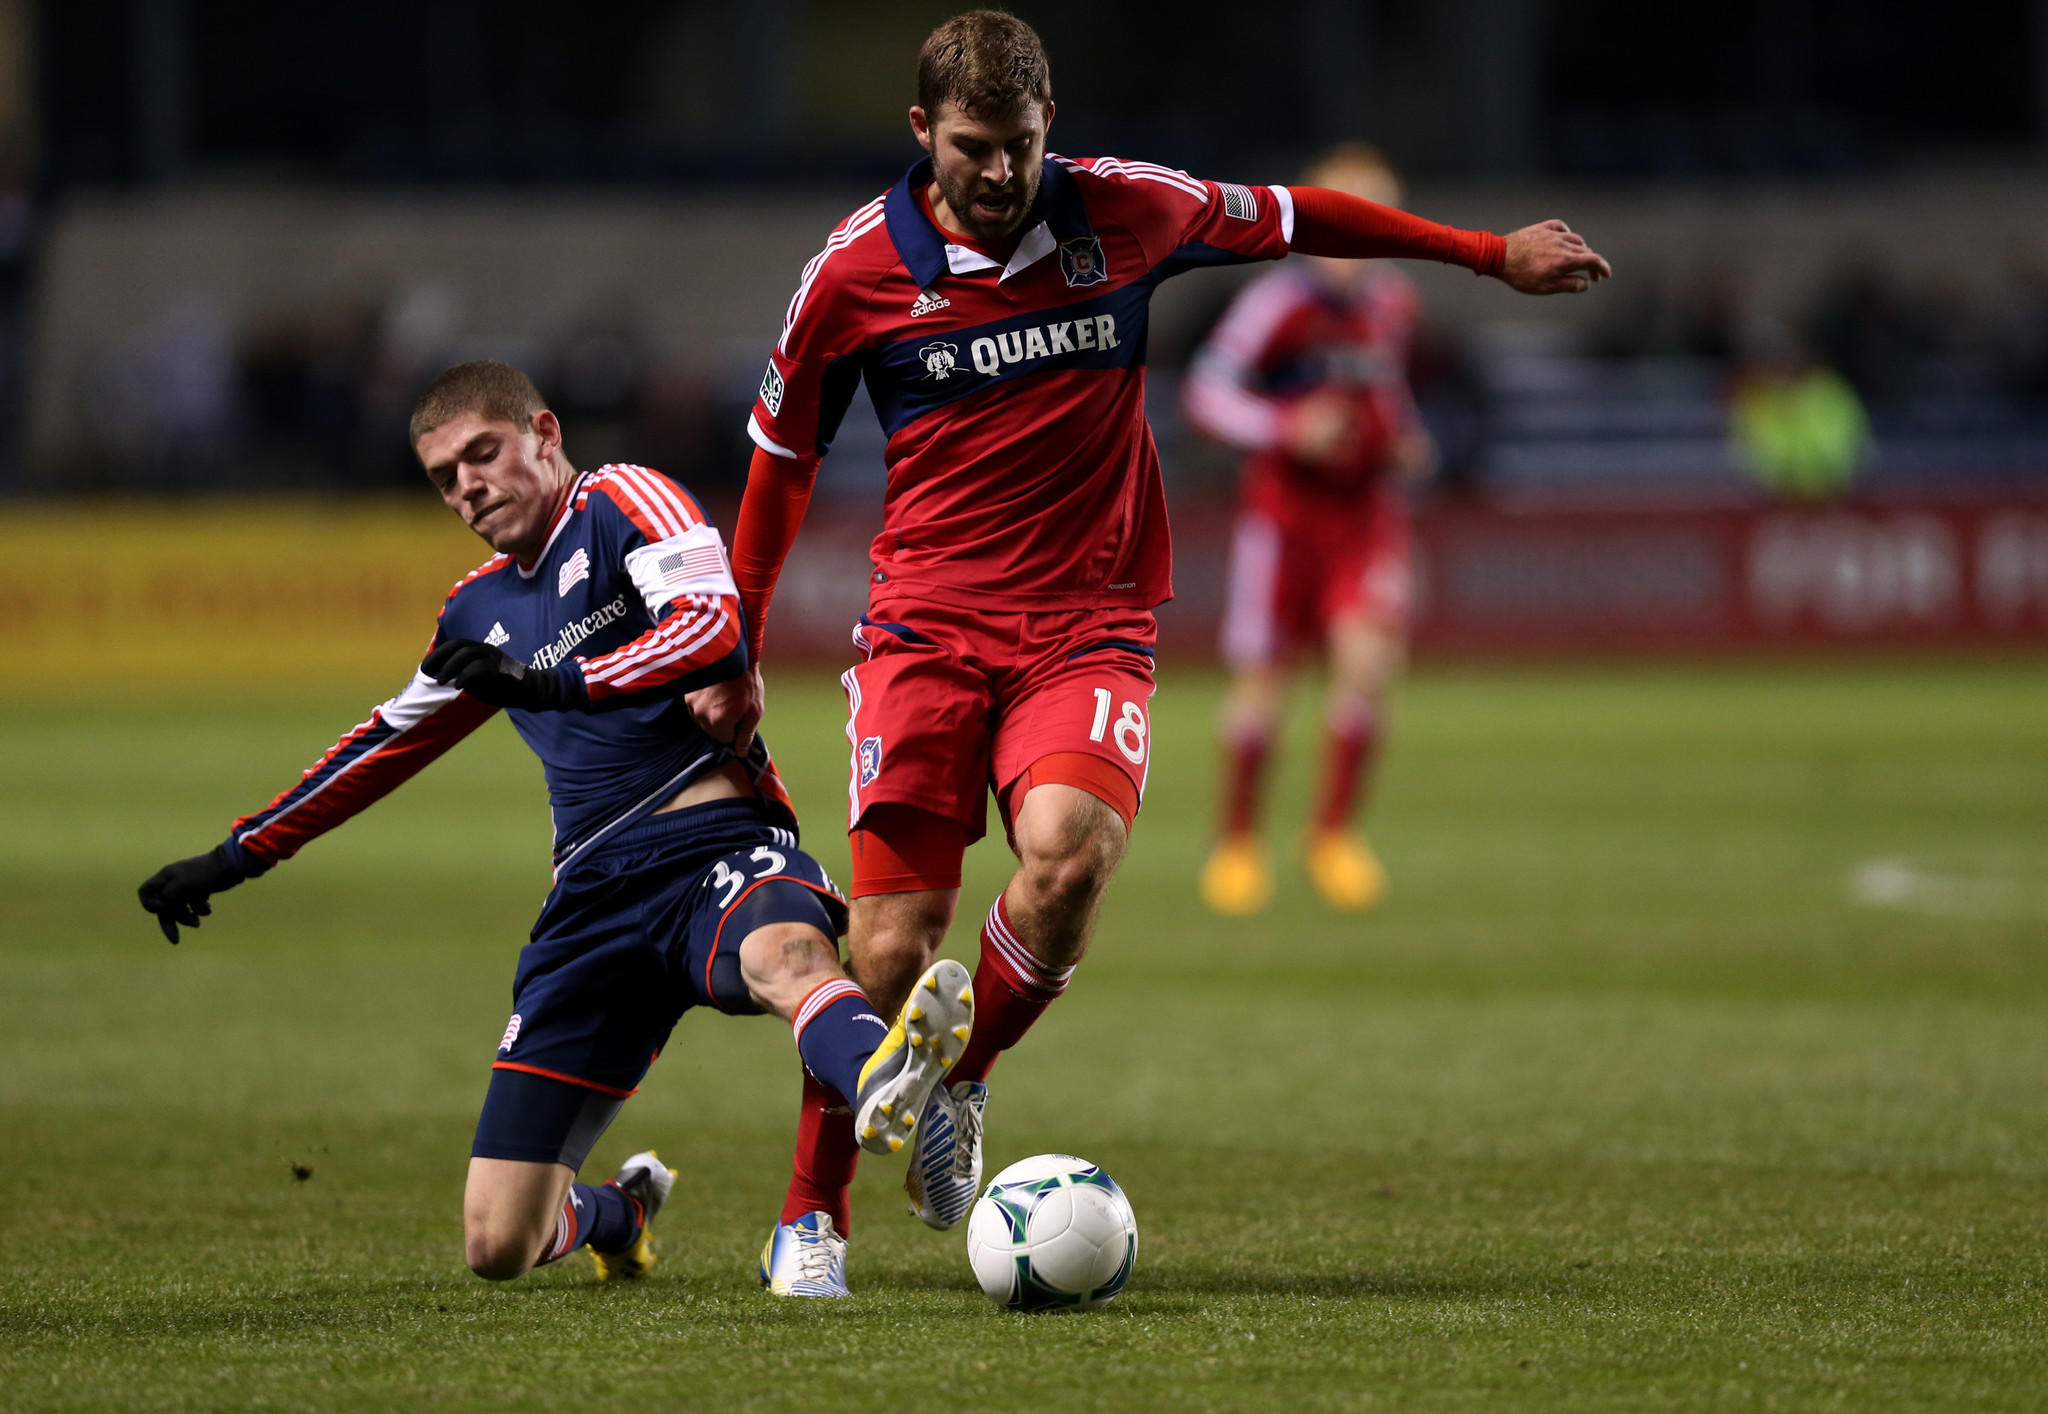 Steven Kinney and Revolution midfielder Donald Smith battle for the ball in the first half at Toyota Park in Bridgeview.